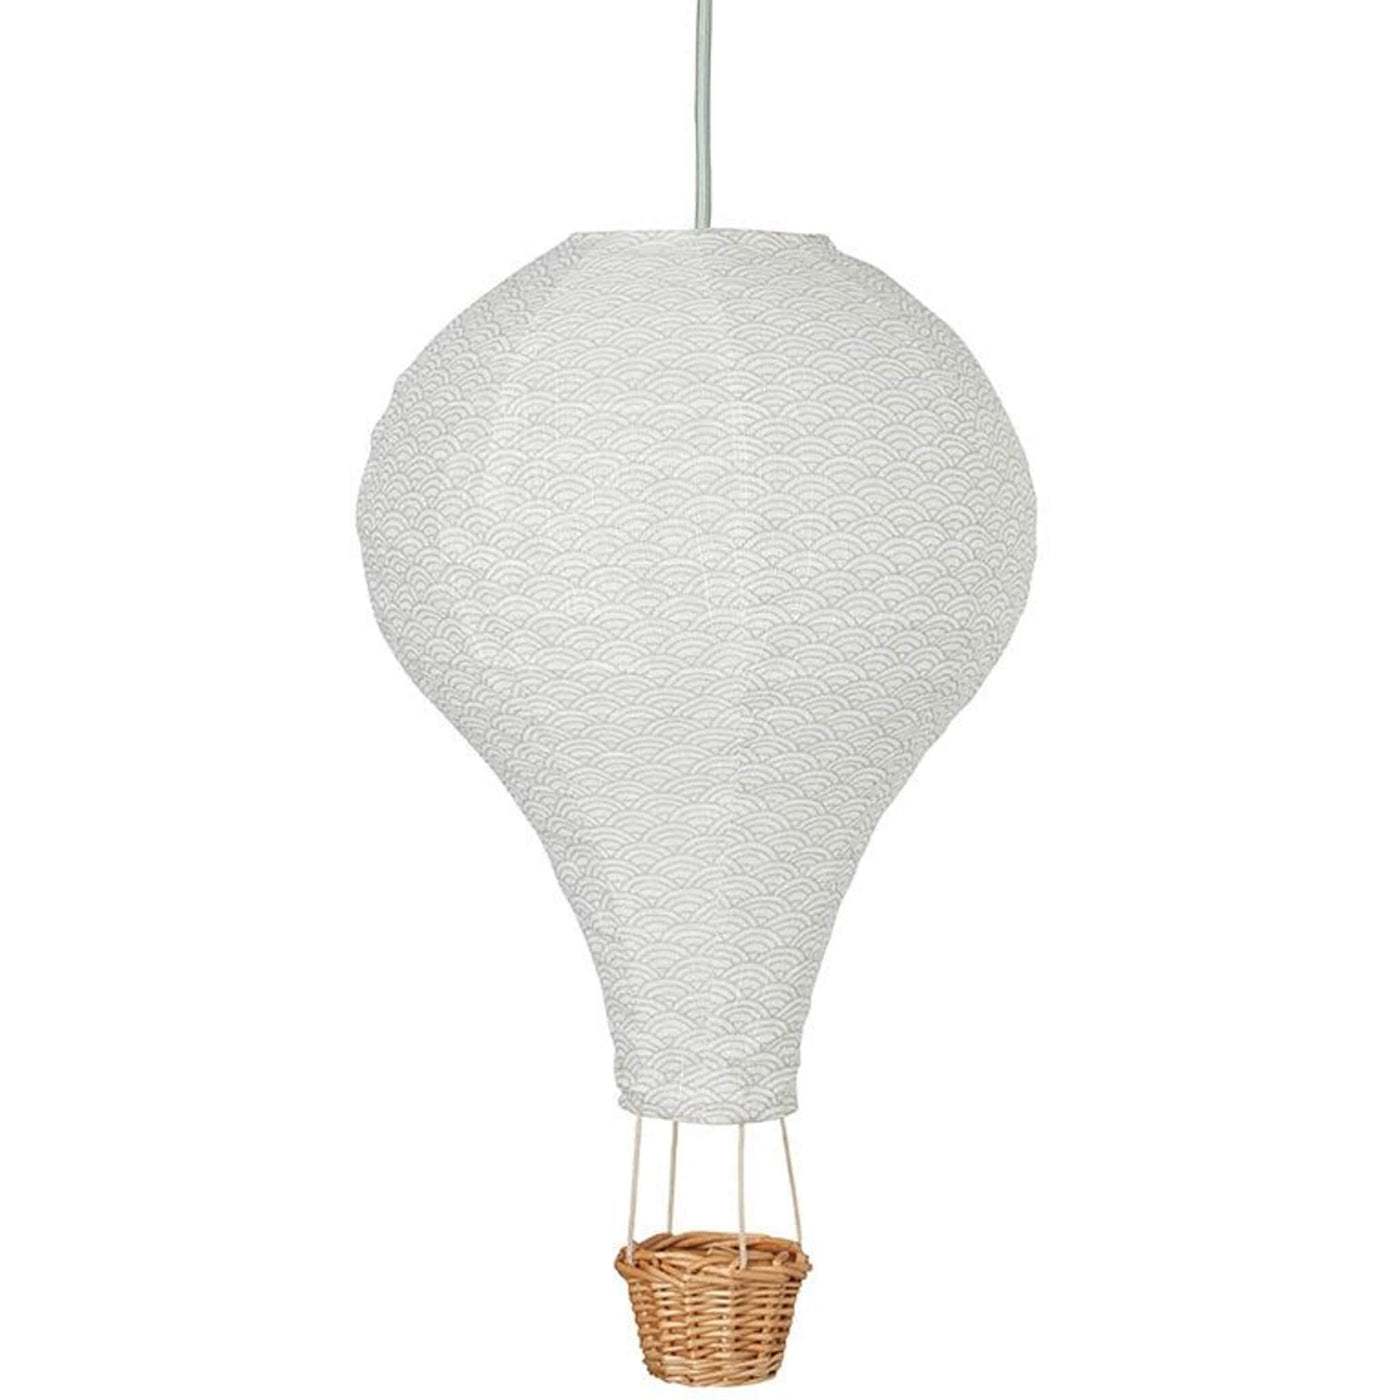 Hot Air Balloon Light - Grey Wave